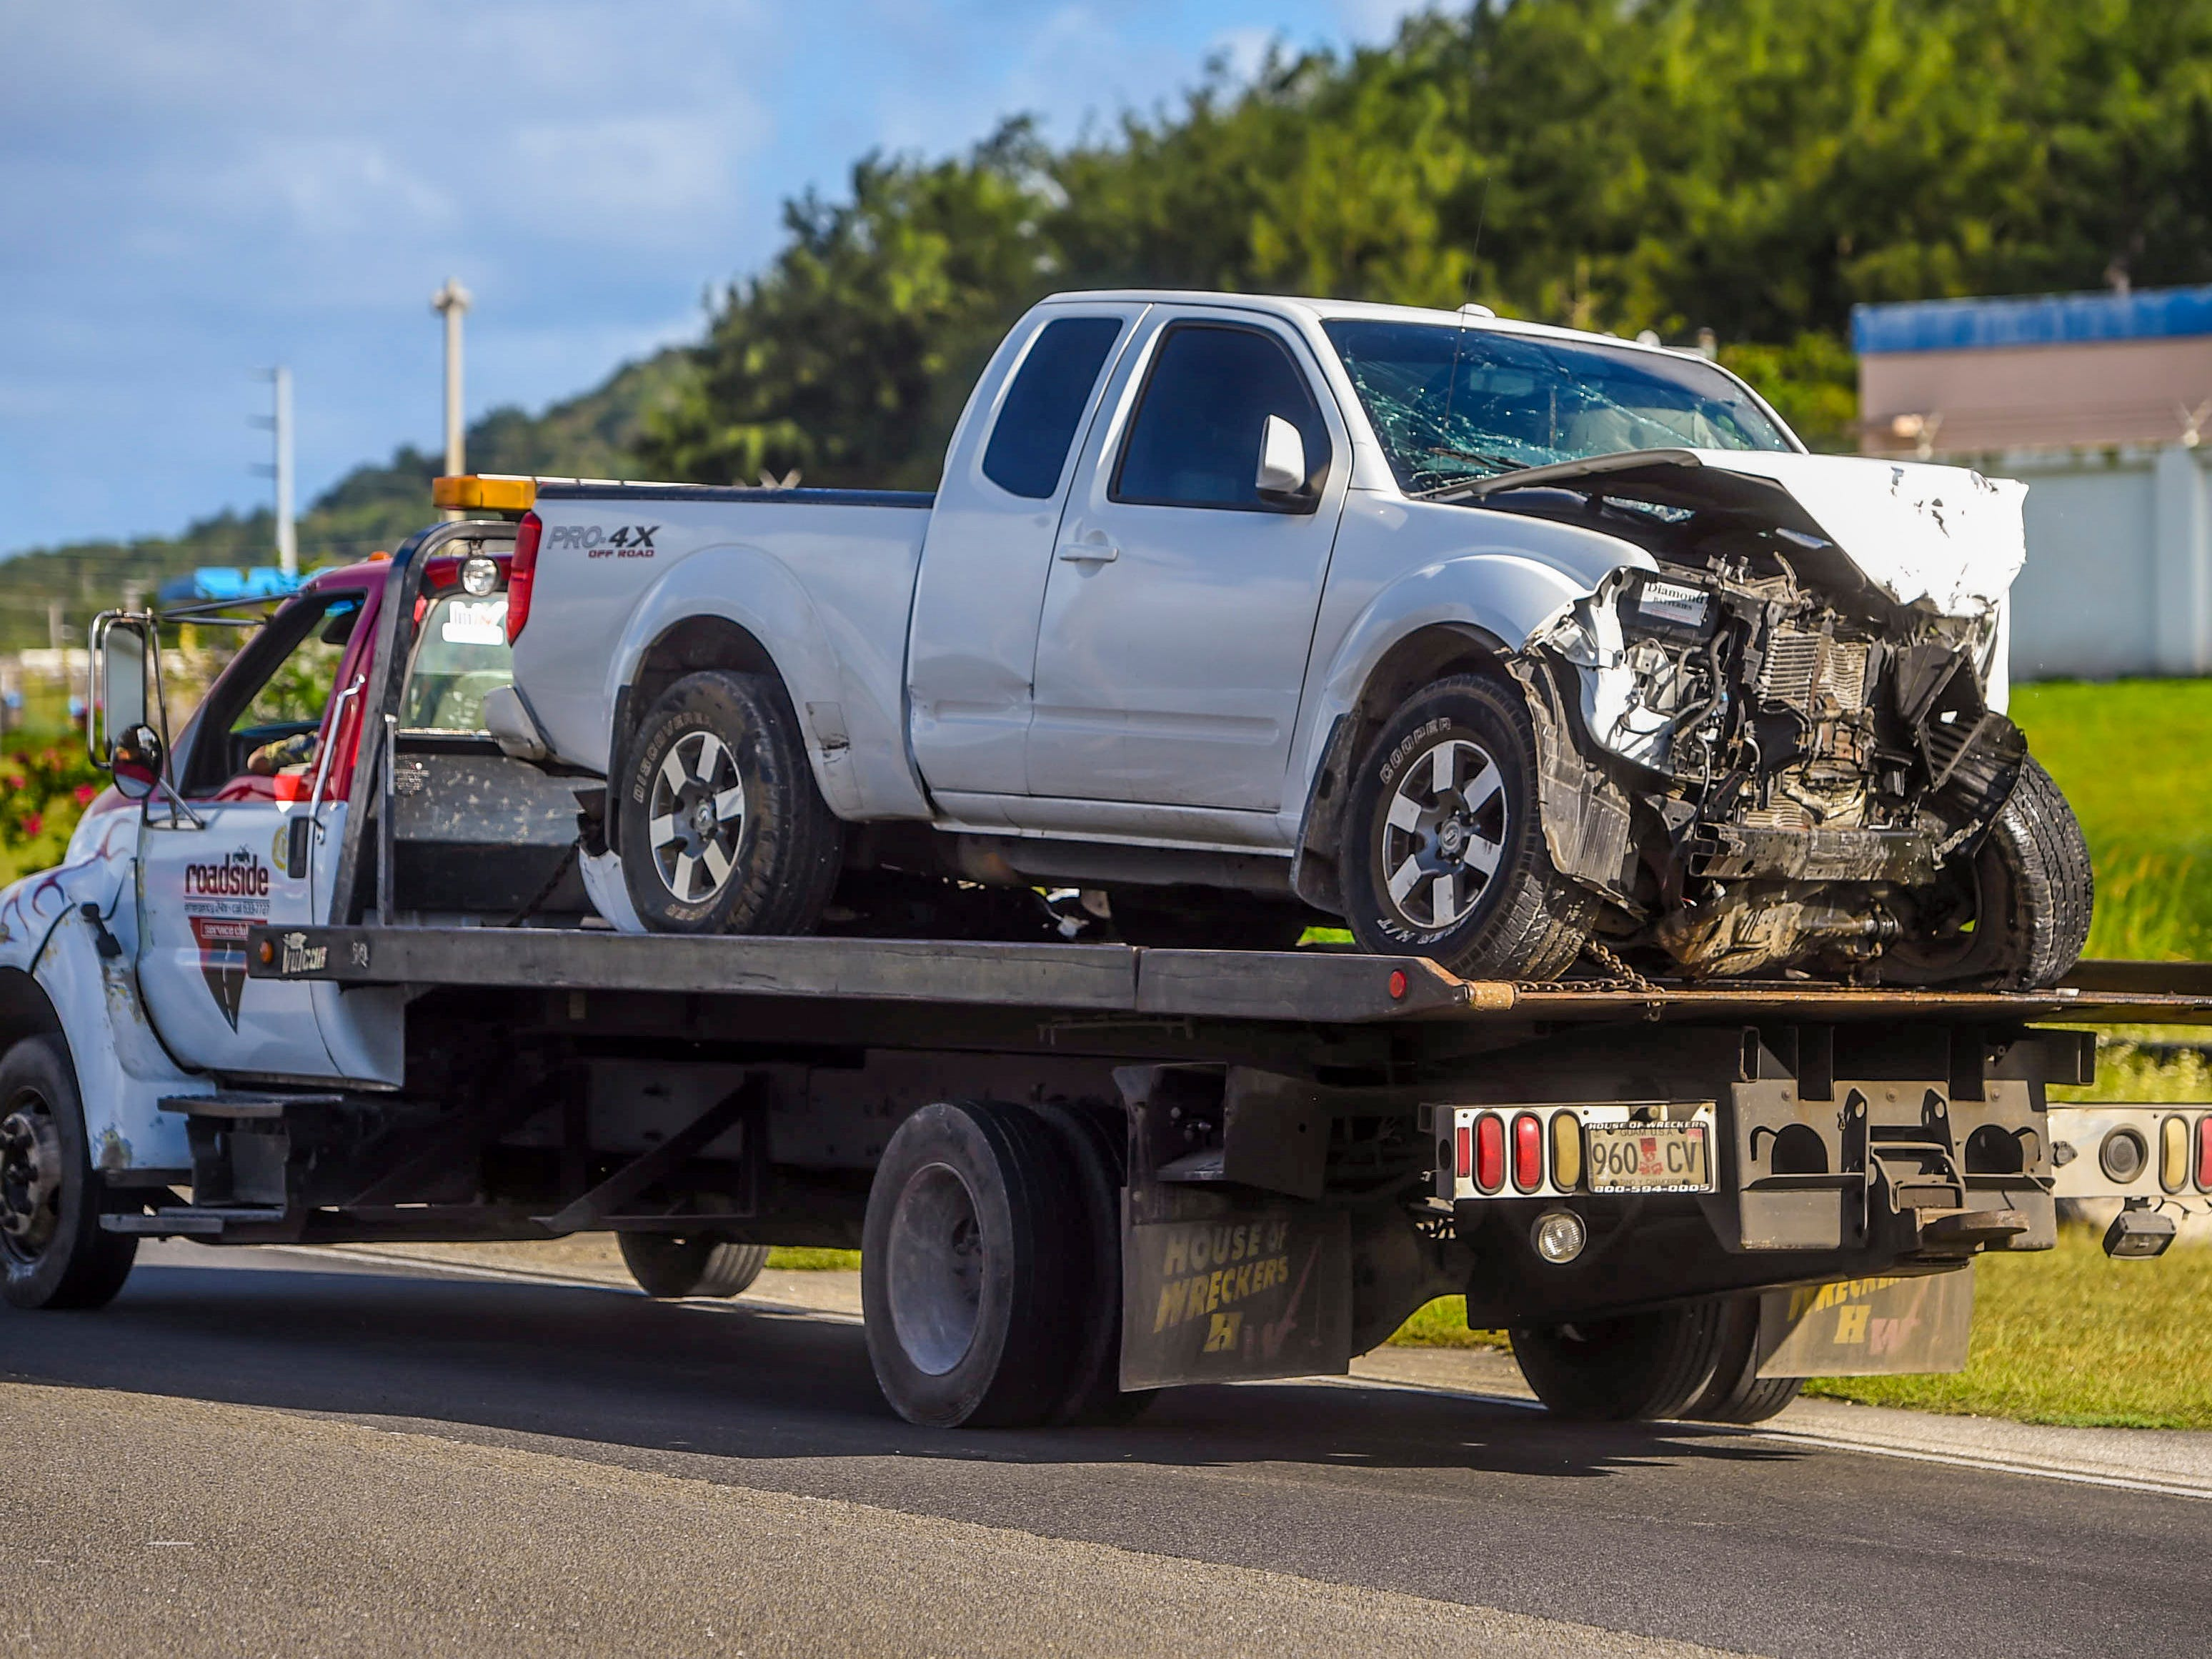 A Nissan Frontier pickup with a smashed front end can be seen loaded on a vehicle transport as Guam Police Department officers conduct an investigation of a crash on Route 10A in Barrigada, Jan. 6, 2019.